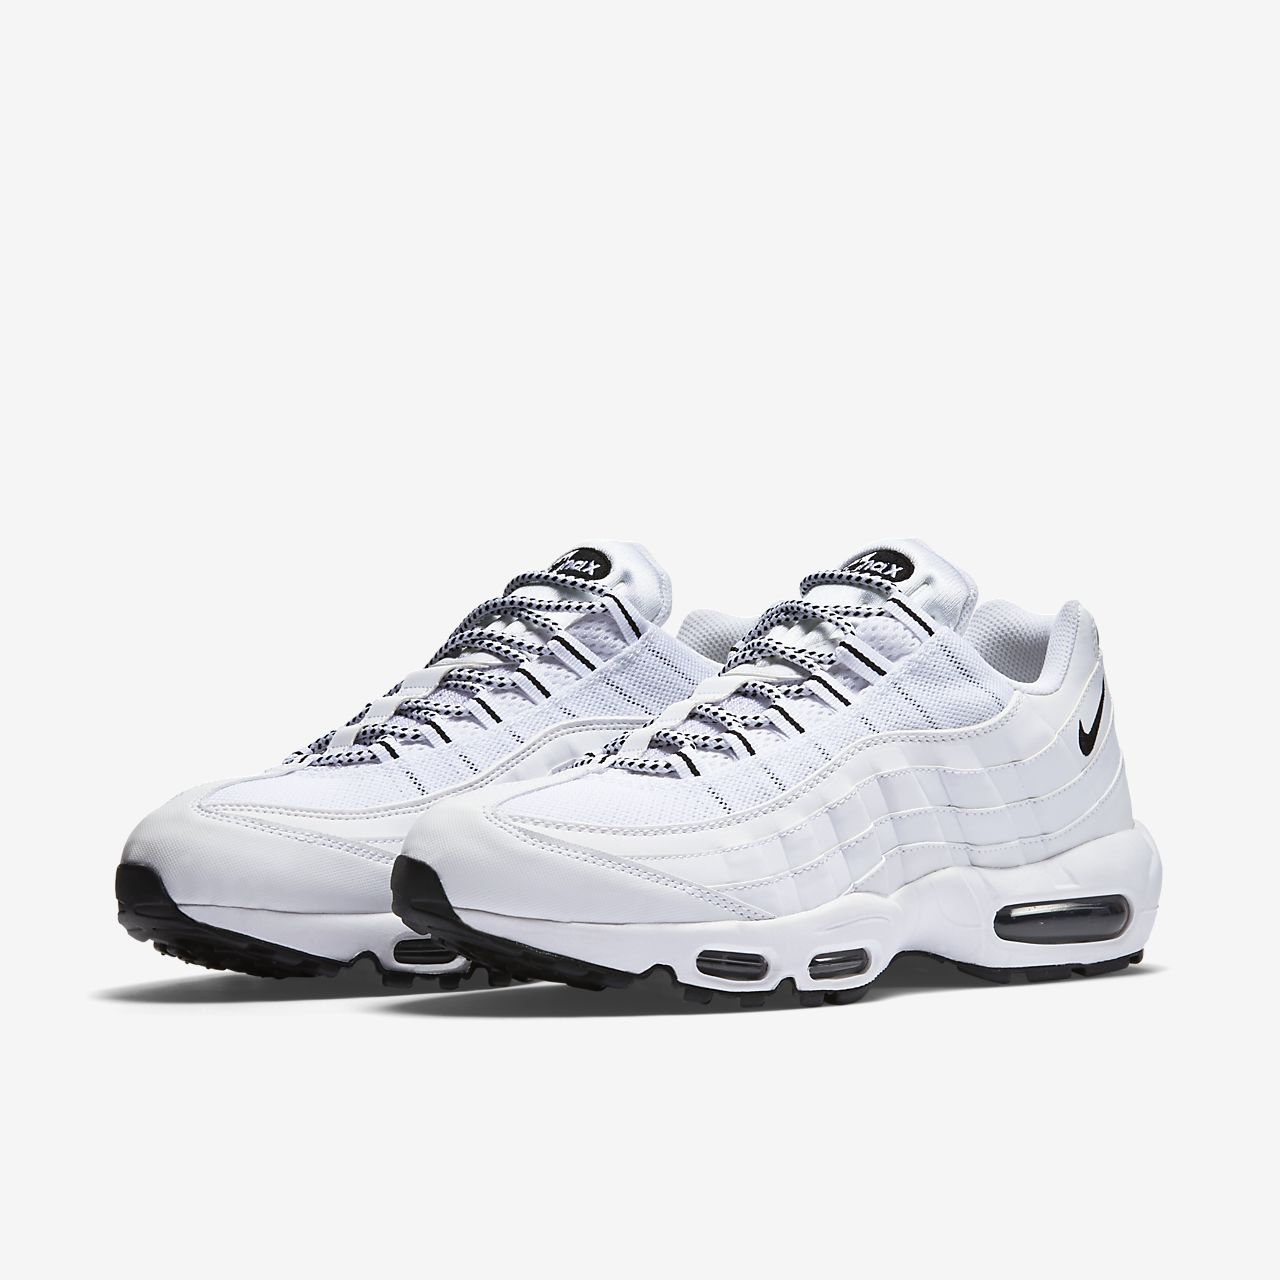 reputable site 149ab d7a94 ... Scarpa Nike Air Max 95 - Uomo